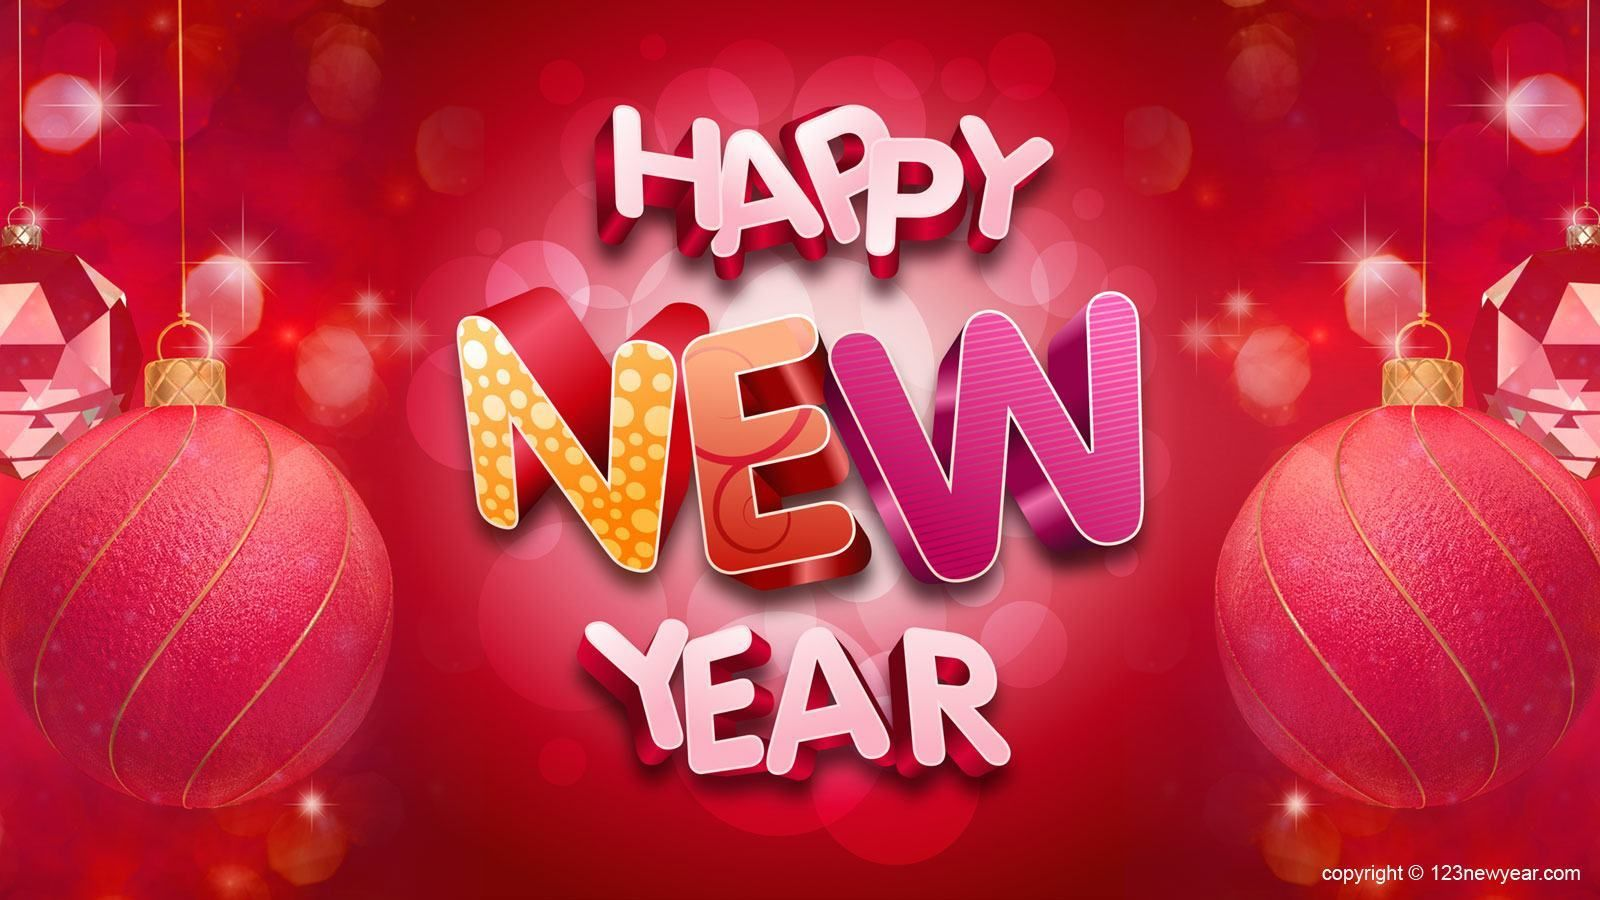 New Year Wallpapers Free Download Hd Wallpapers Pinterest Hd